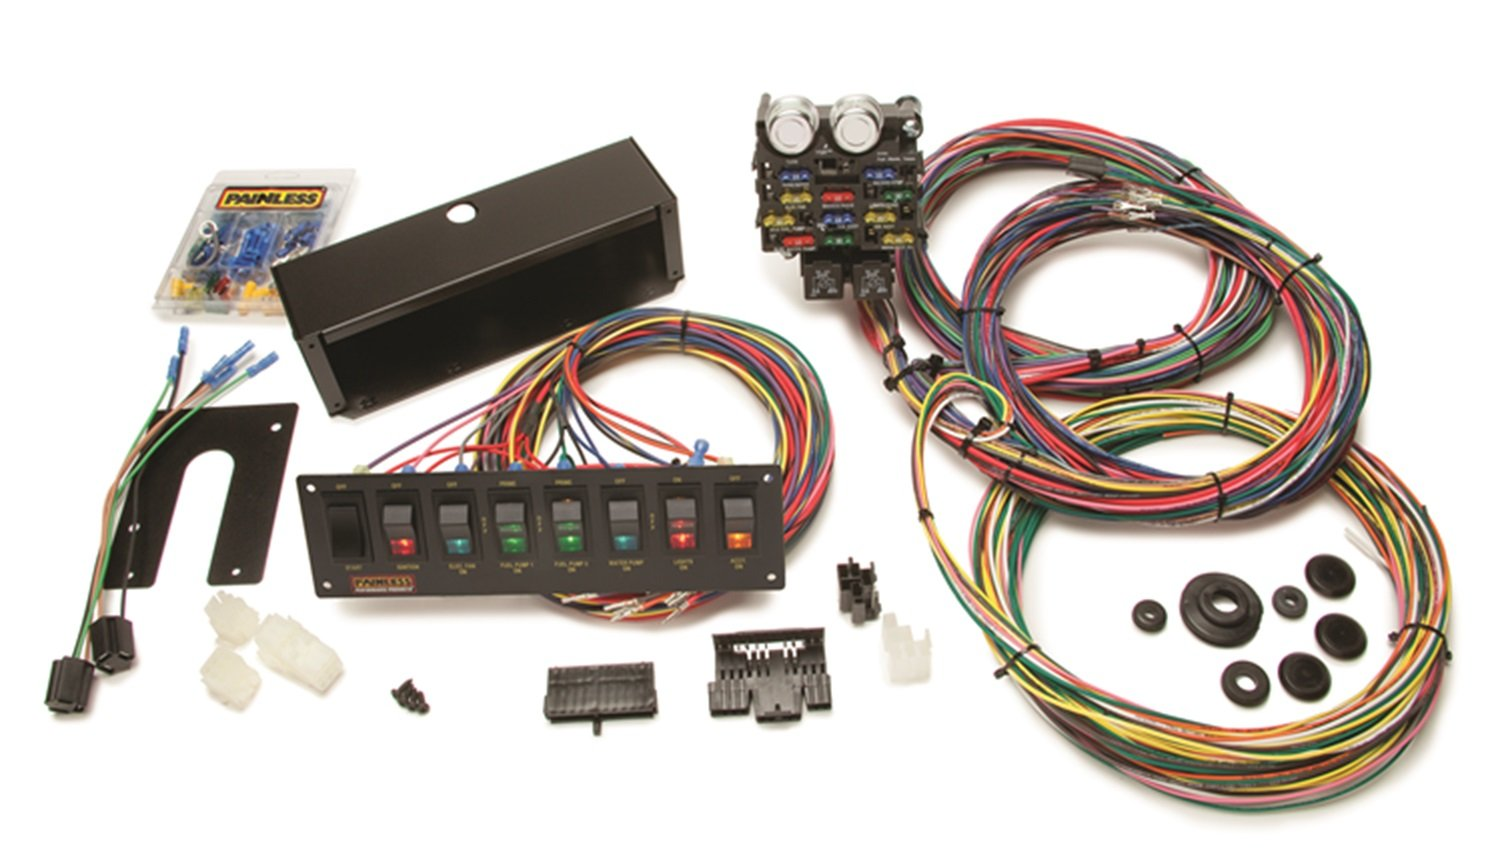 71BqRBAaHEL._SL1500_ painless wiring harness 5 0 engine swap wiring harness \u2022 free wire harness 12086760 at gsmx.co